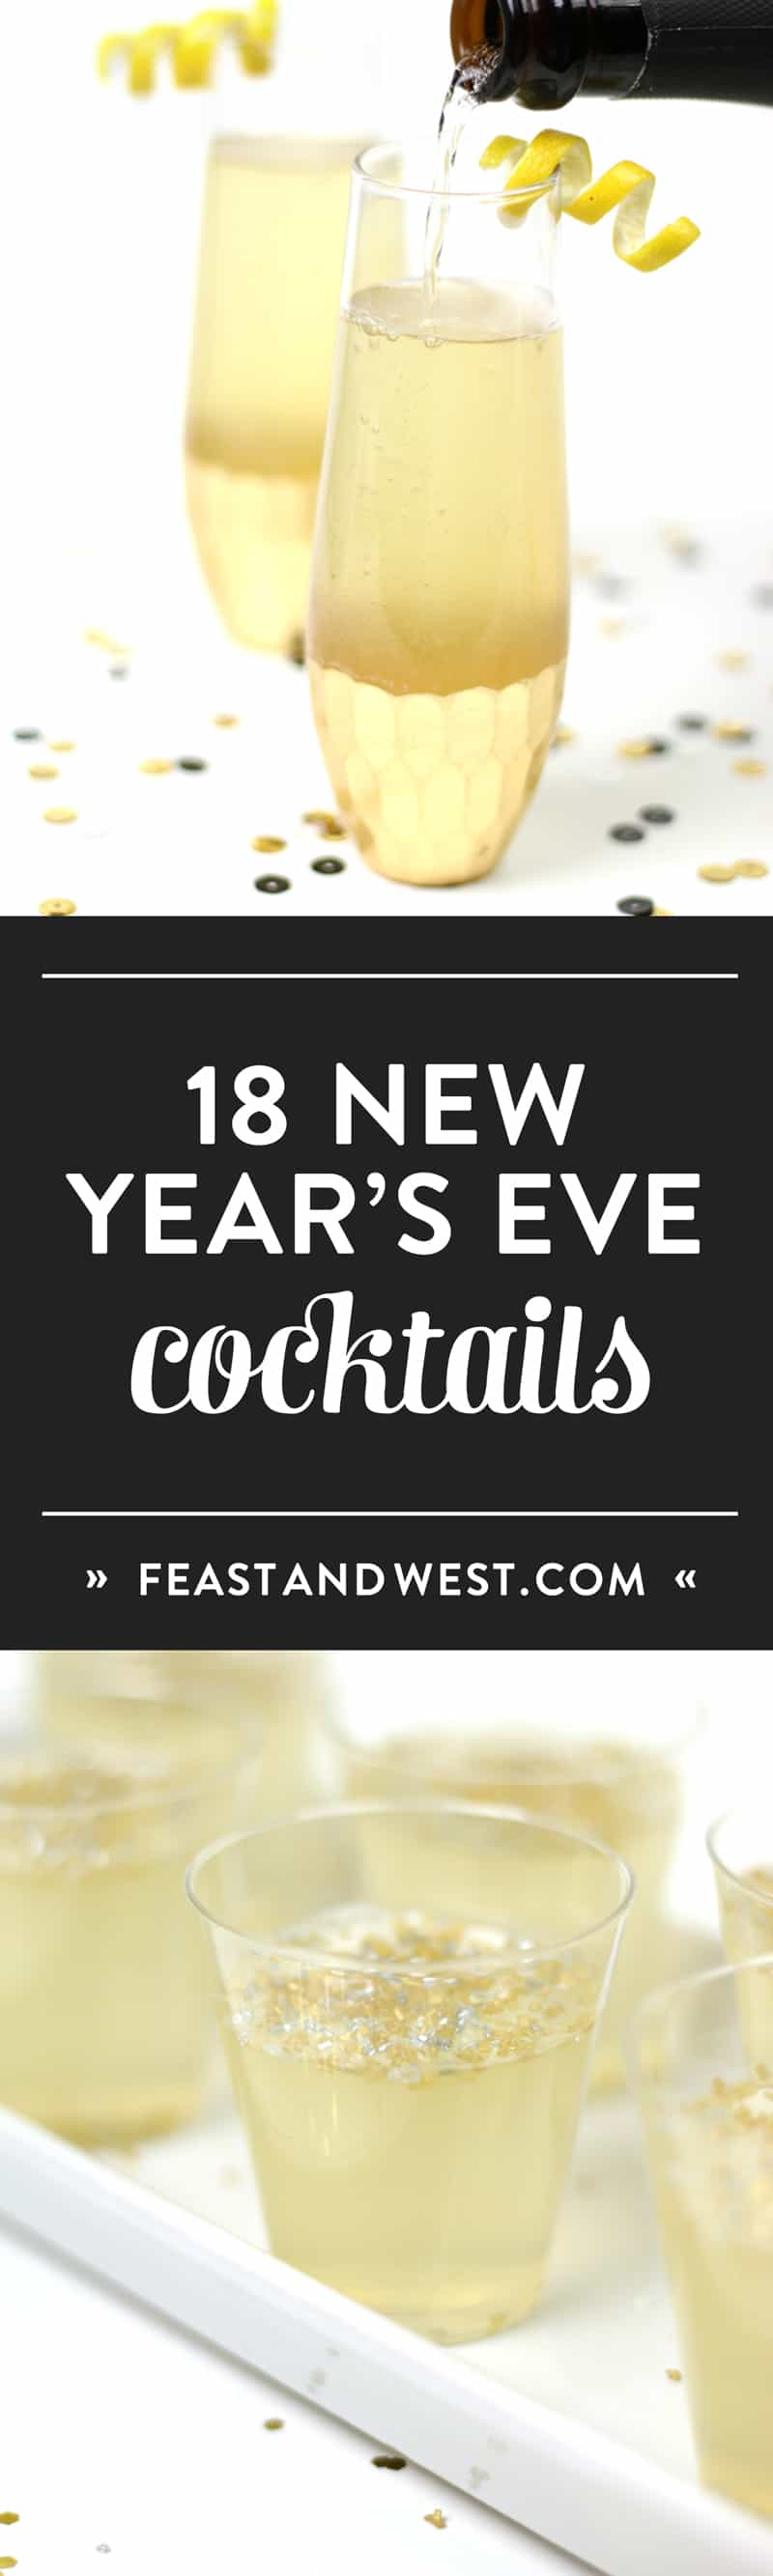 Plain bubbly is boring. Here are 18 New Year's Eve champagne cocktails worthy of a midnight toast! (via feastandwest.com)